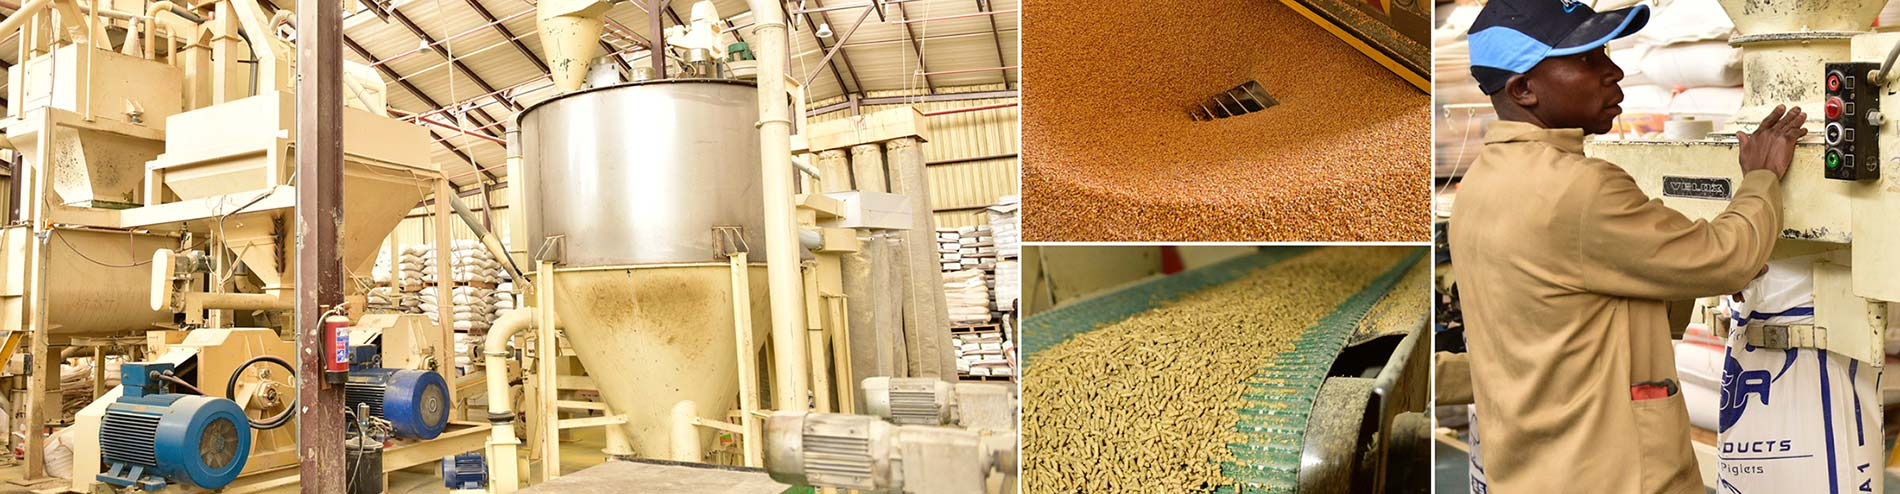 Manufacturer & Supplier of Quality Feeds